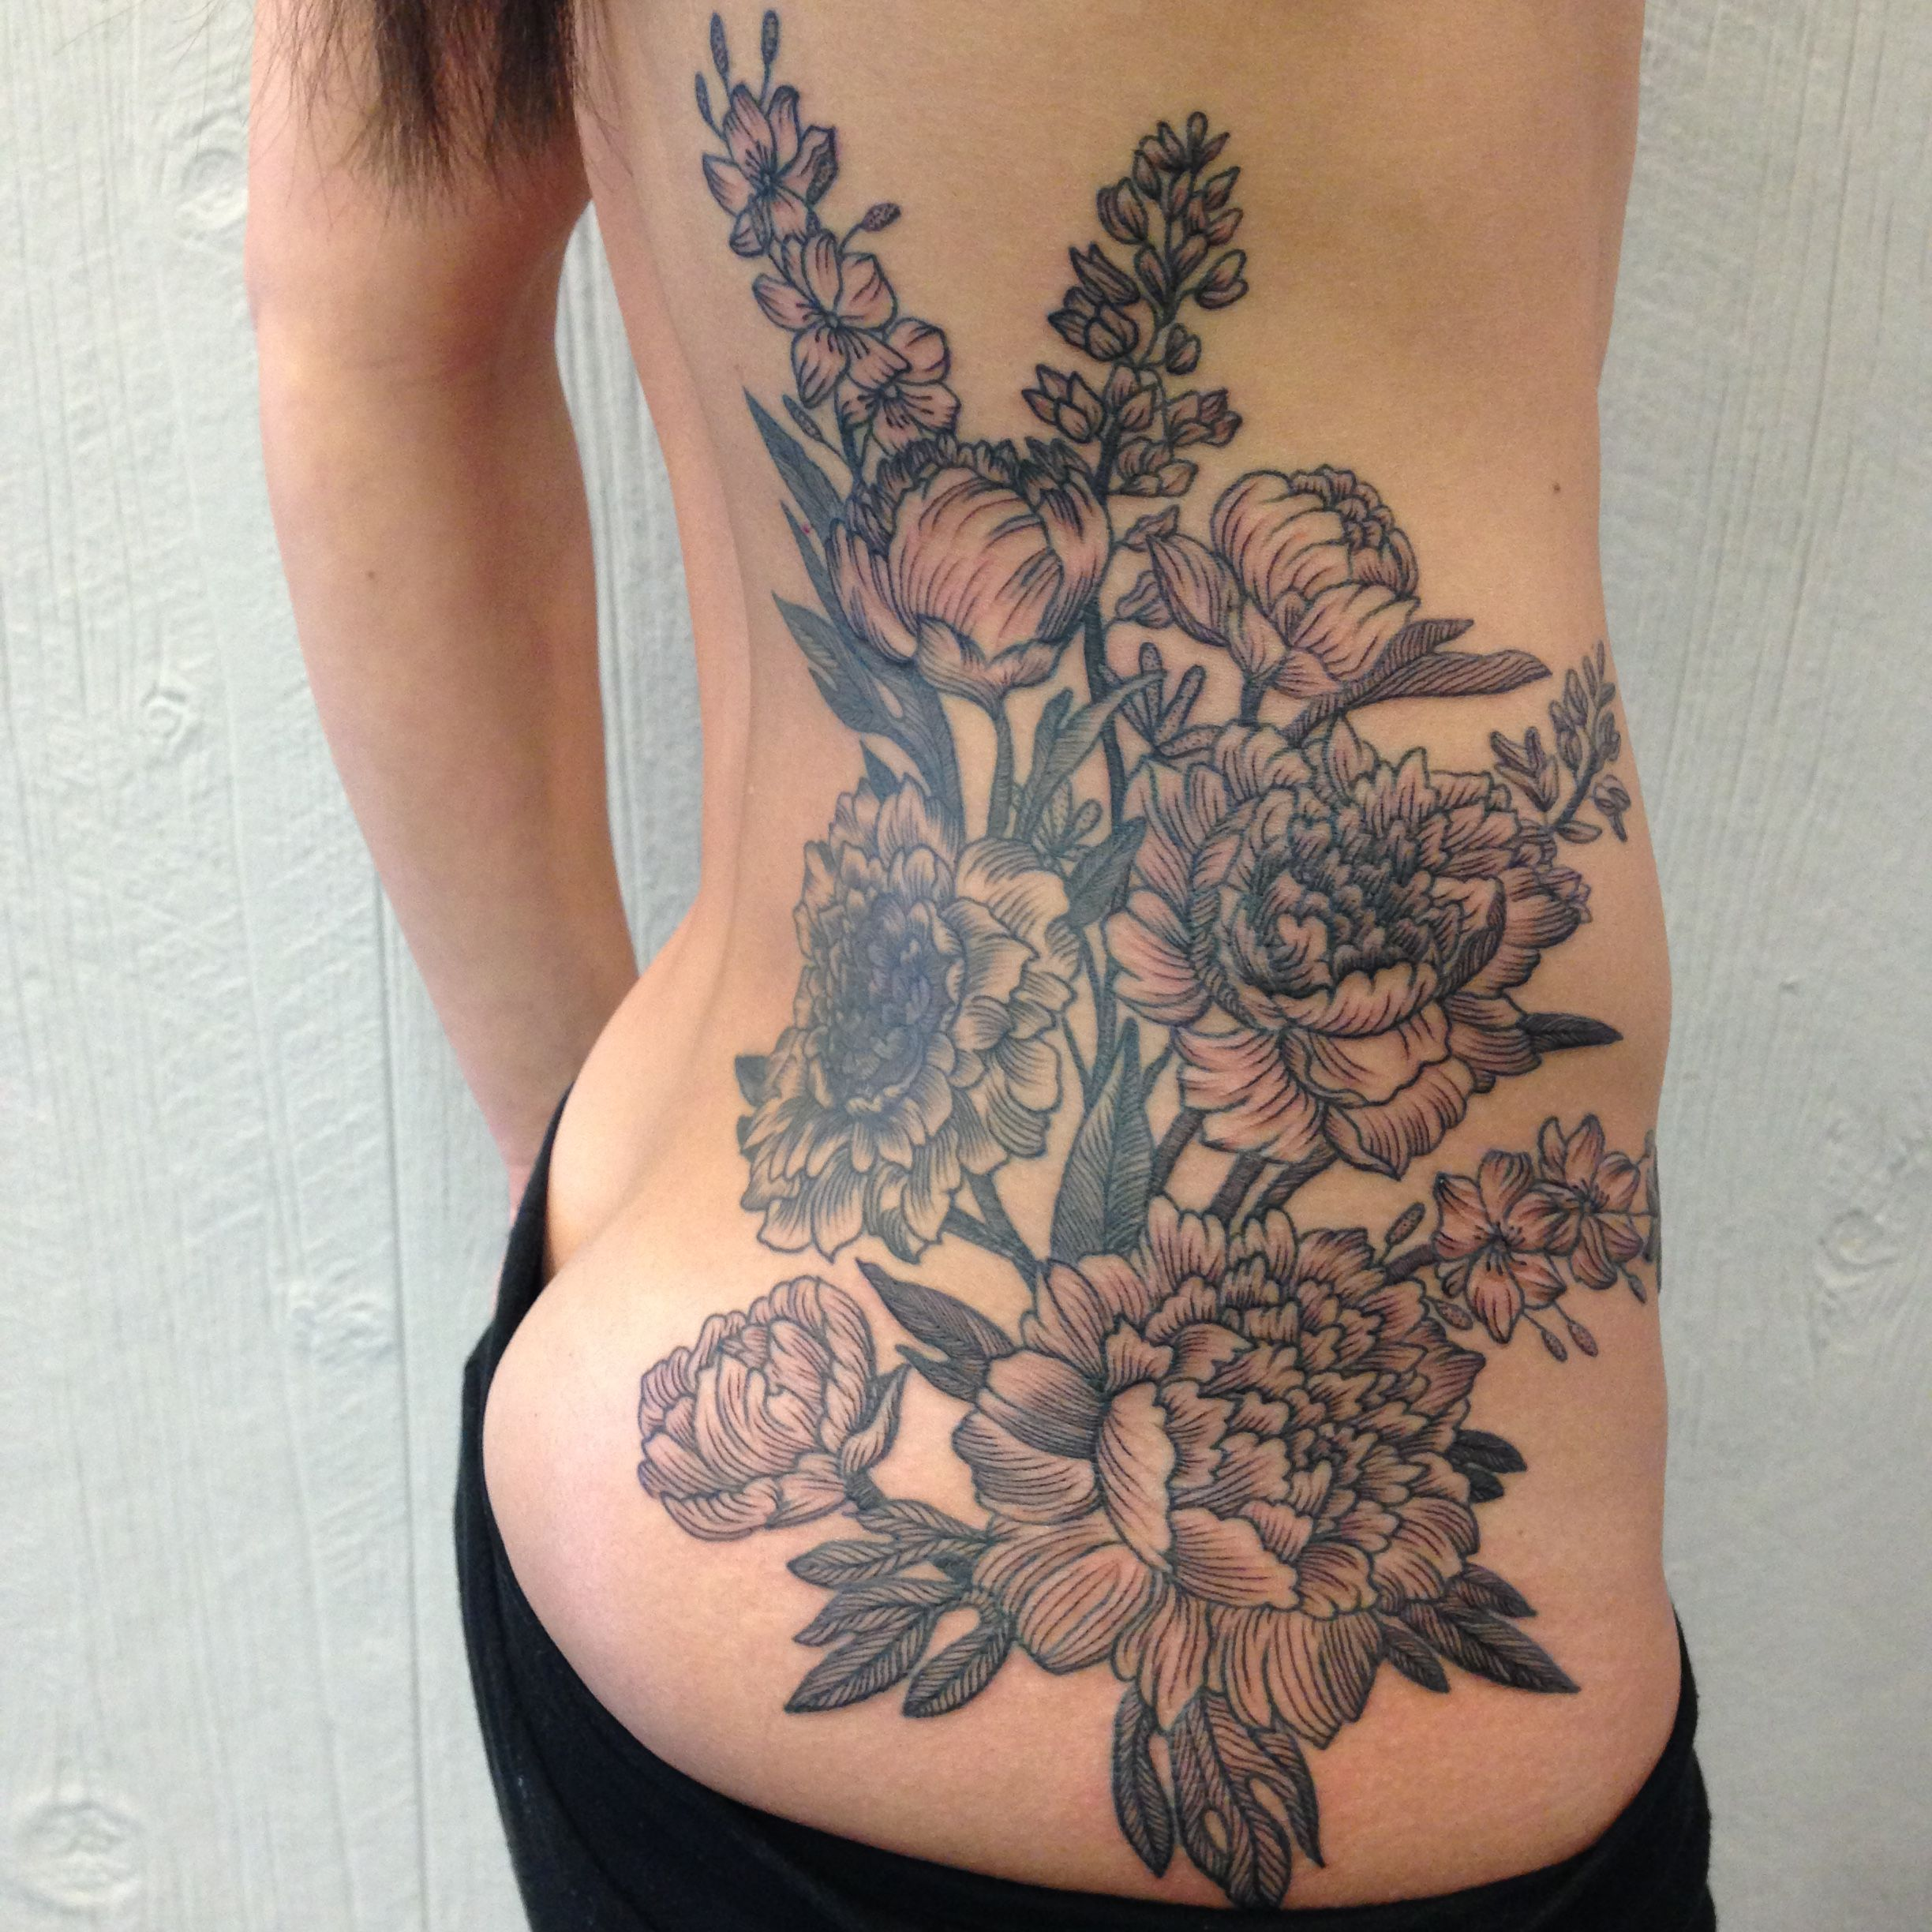 Pin By Kerry Eccles On Tattoos: Botanical Black Work Cover-up By Kerry Henderson, Heart Of